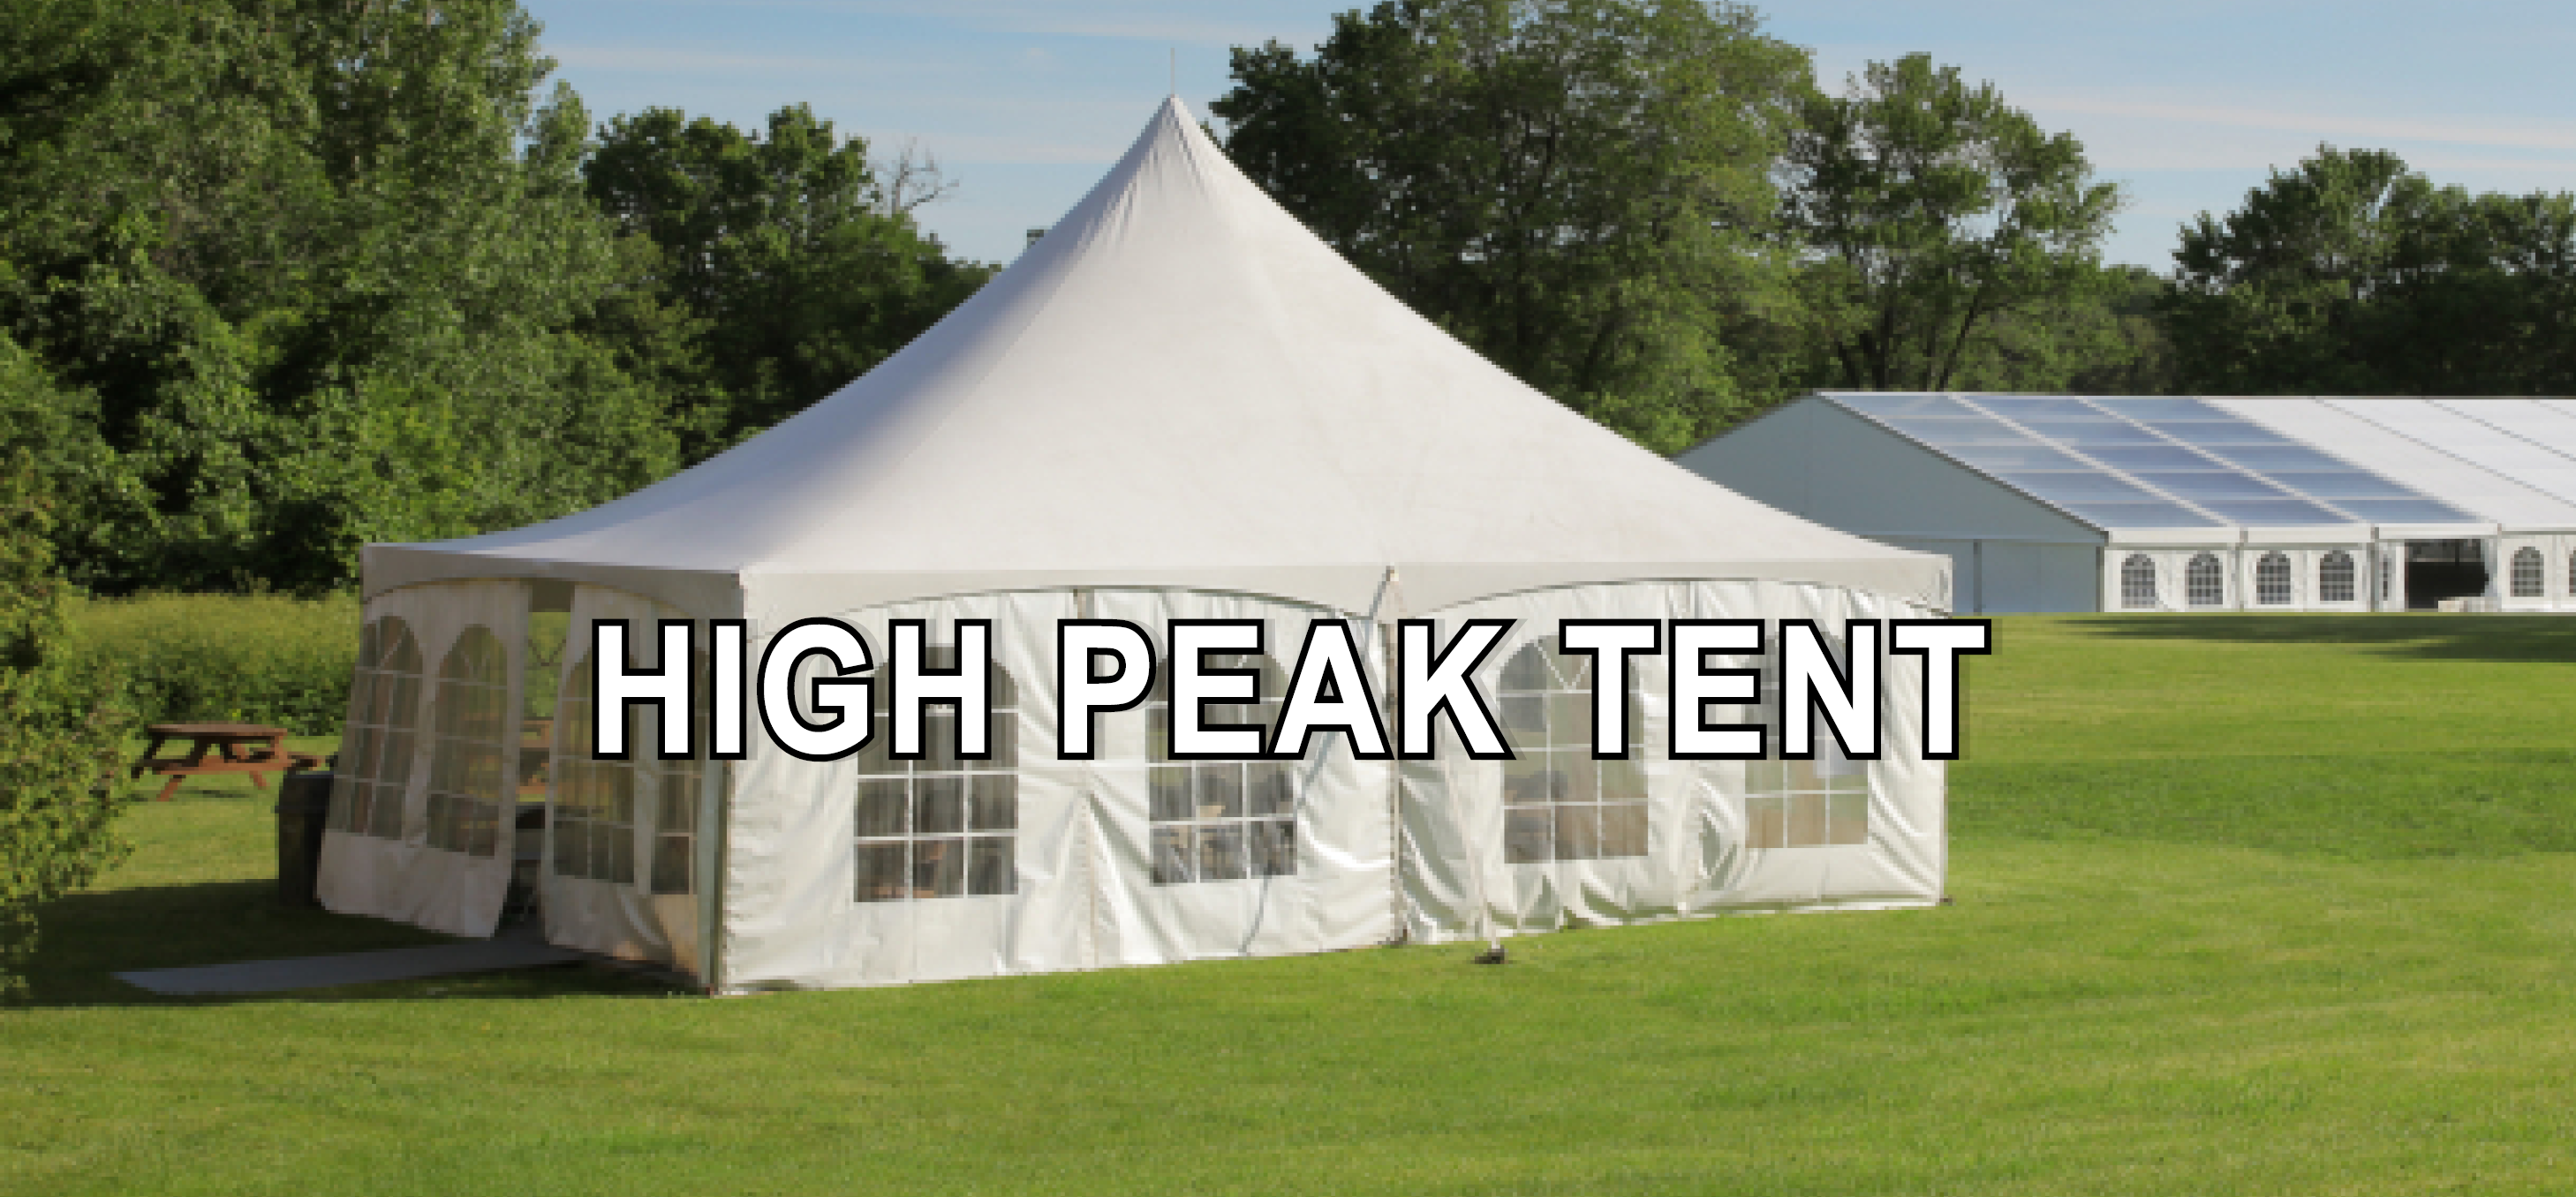 HIGH PEAK TENT RENTAL SIZES INCLUDE BUT ARE NOT LIMITED TO: